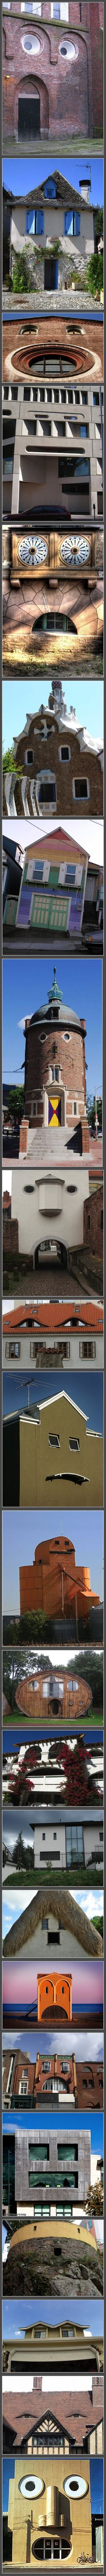 Buildings With Unintentionally Funny Faces -- these so make me laugh! Not sure if they are homes but architecture worthy of notice in any event. Unusual Buildings, Interesting Buildings, Things With Faces, Unusual Homes, Strange Places, Unique Architecture, Oui Oui, Funny Faces, Funny Pictures